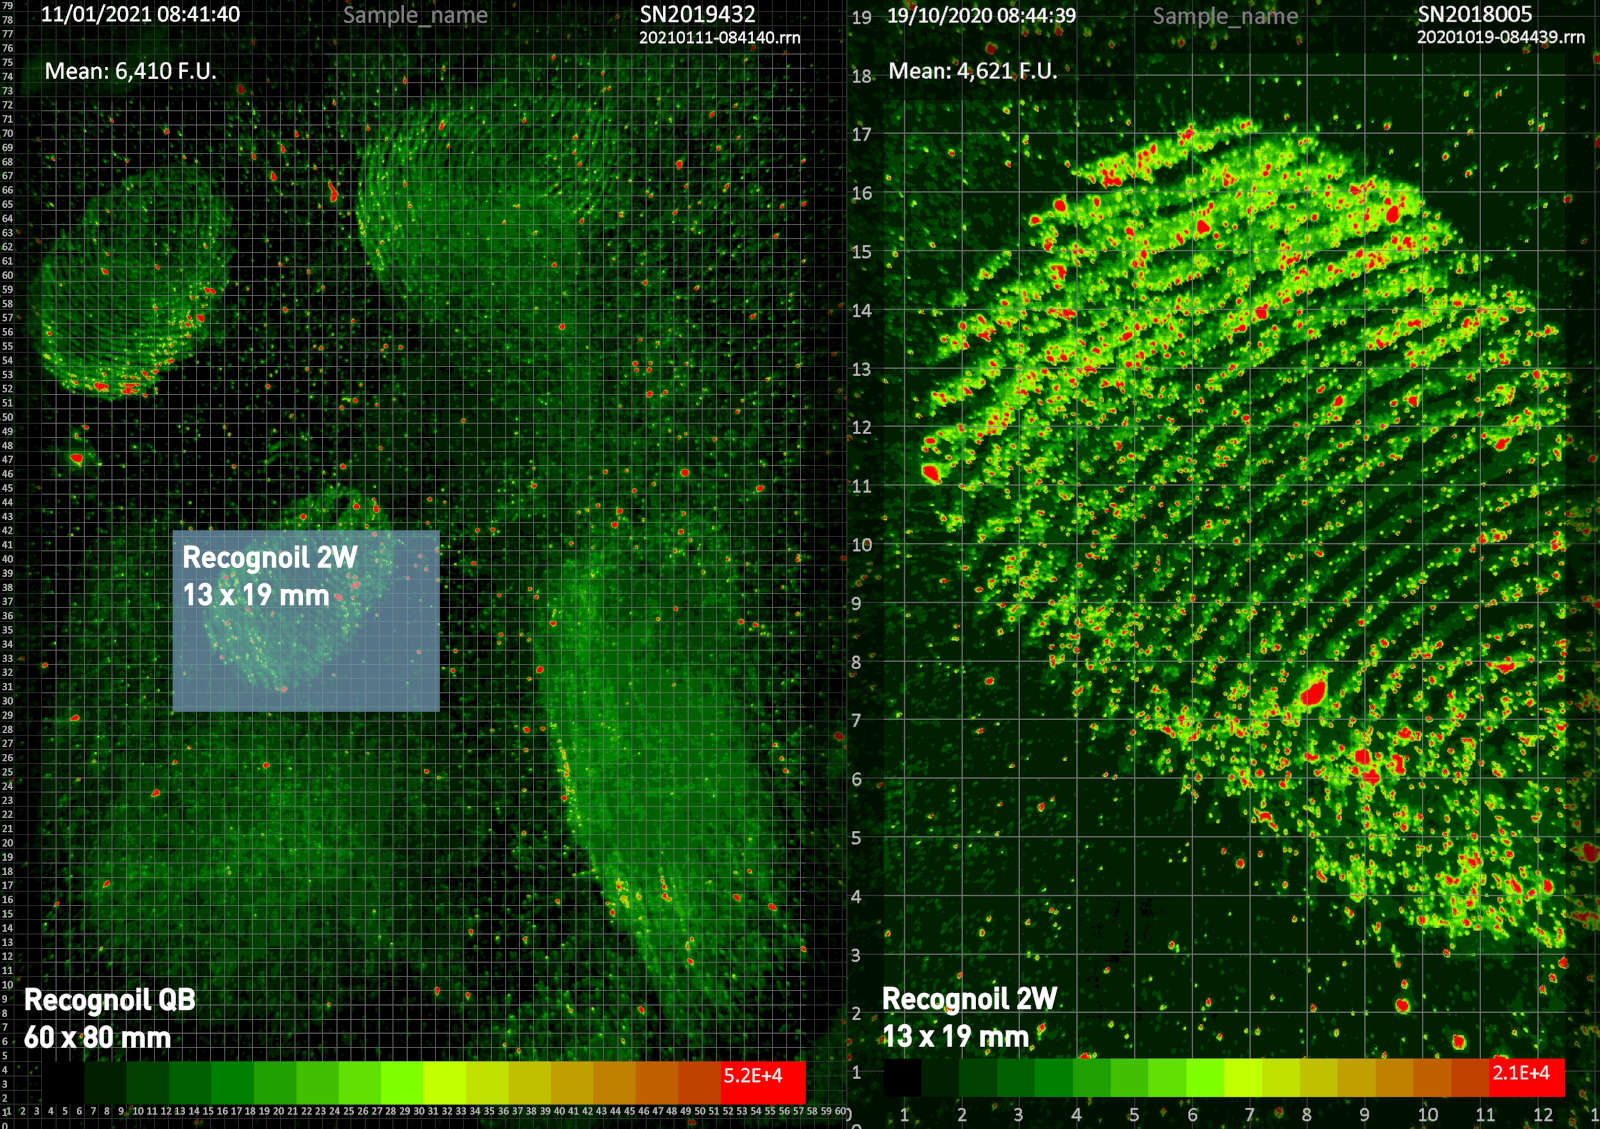 Main image output from Recognoil QB device - fluorescence map of the distribution of oil and grease contamination on the surface of the part